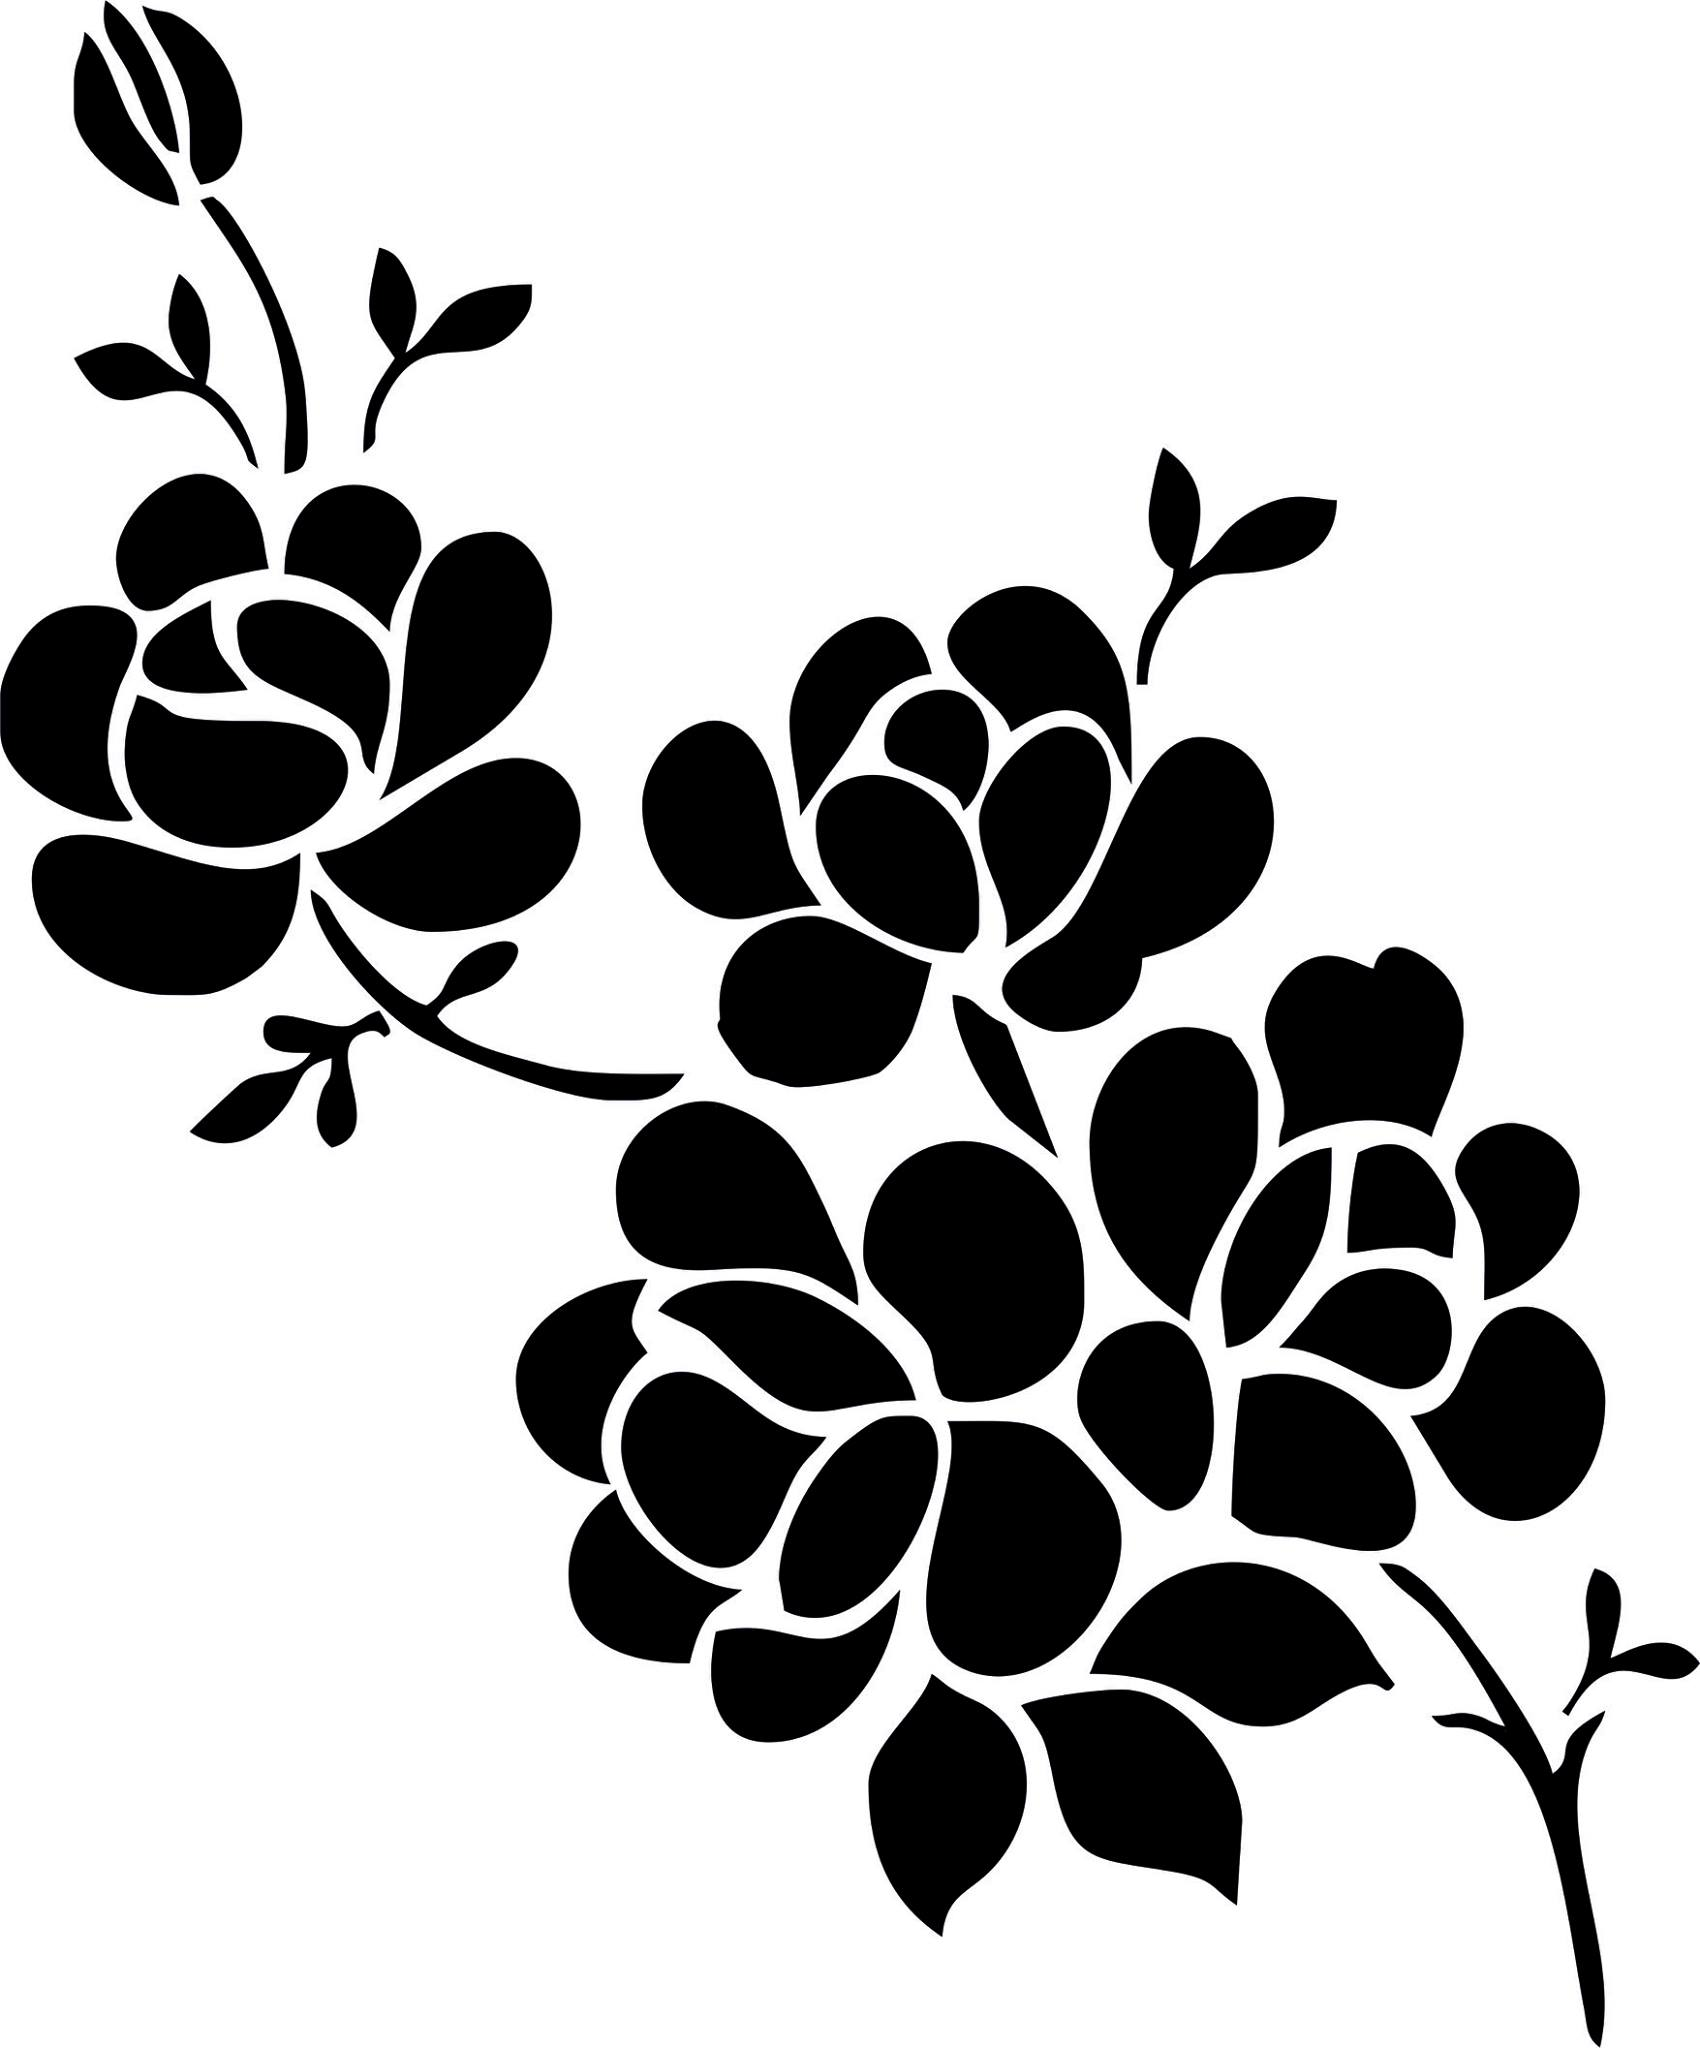 Elegant Black And White Flower Vector Art Image Free Download